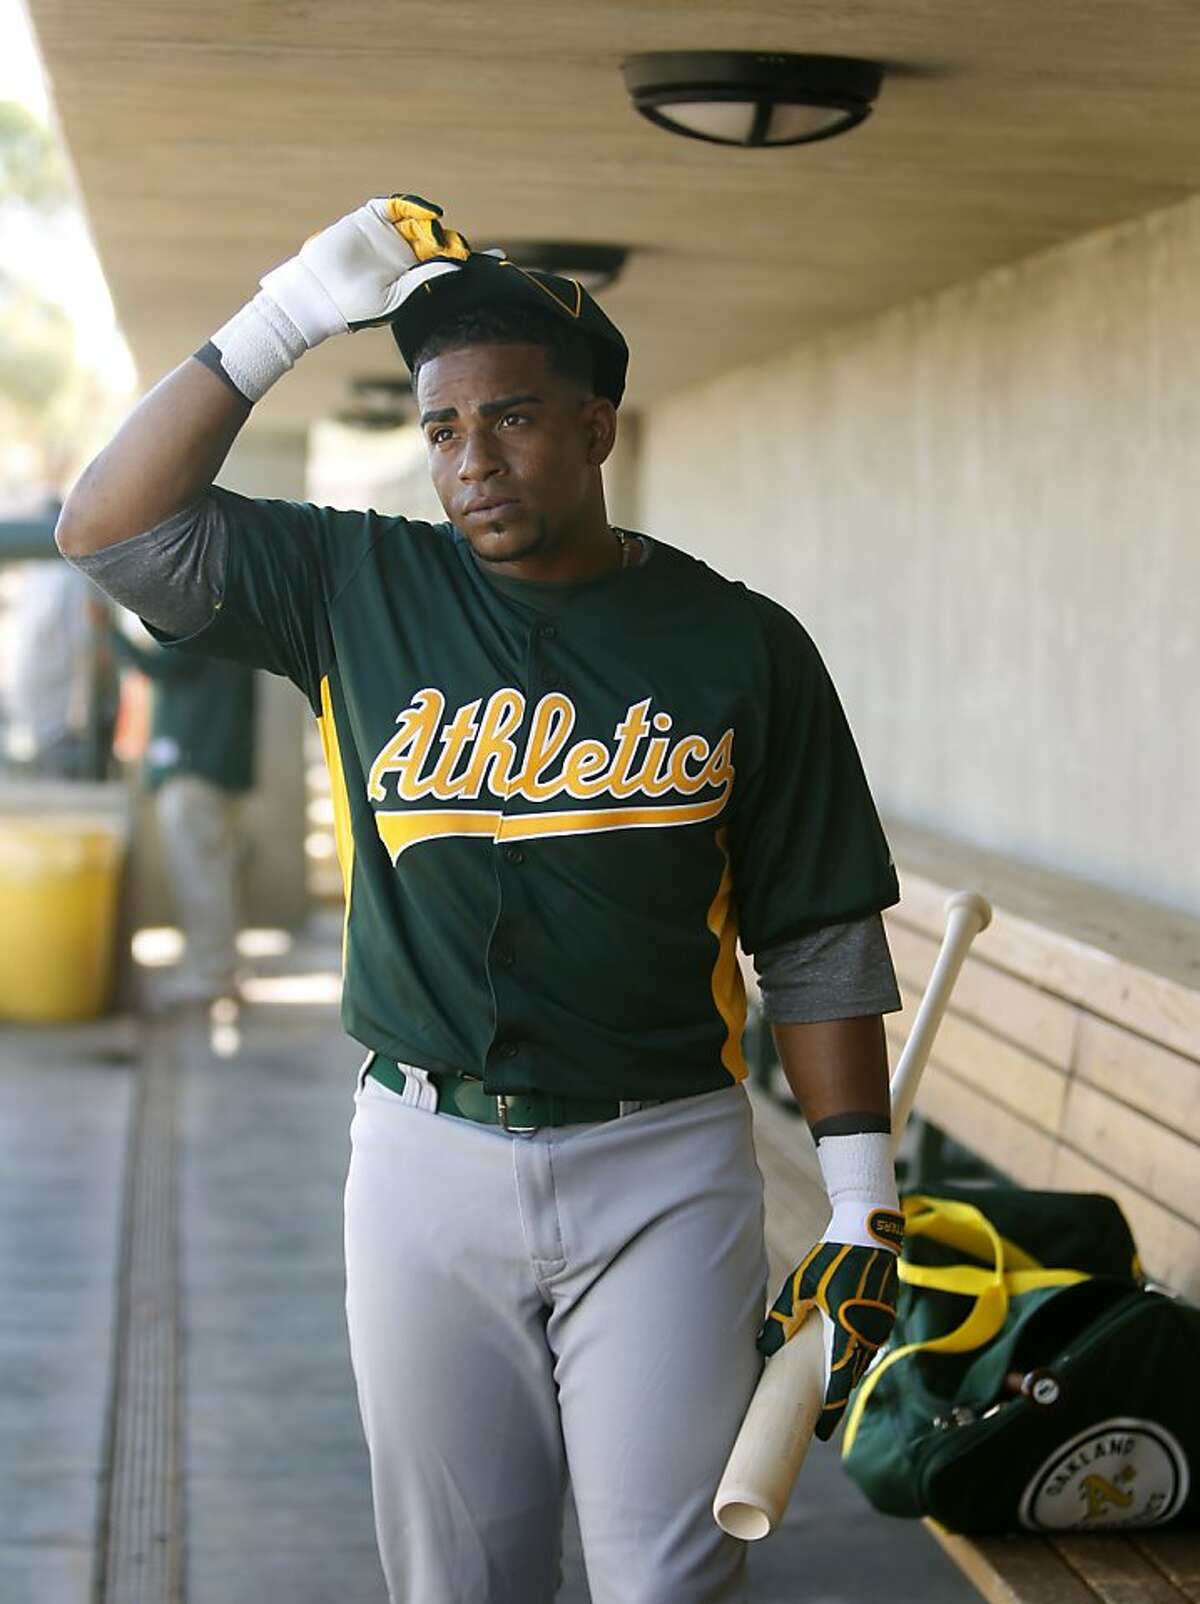 Yoenis Cespedes gets ready to take batting practice in his first workout at the Oakland A's camp in Phoenix, Ariz. on Sunday, March 4, 2012. Cespedes, who defected from Cuba last year, signed a four-year contract with Oakland.